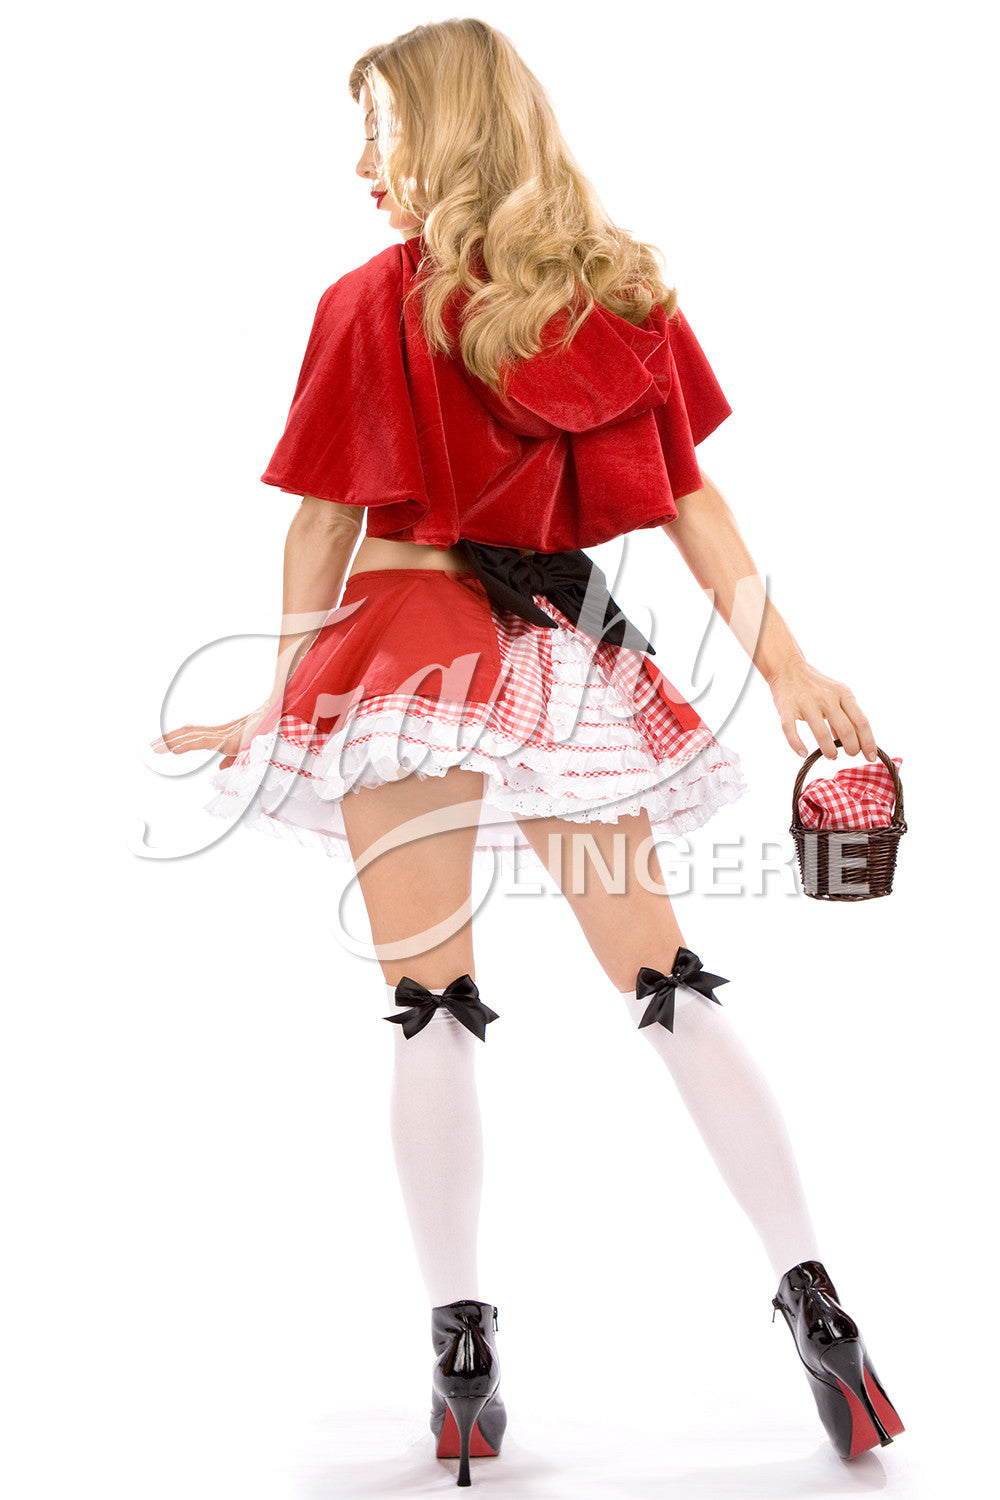 Bridget Red Riding Hood Top